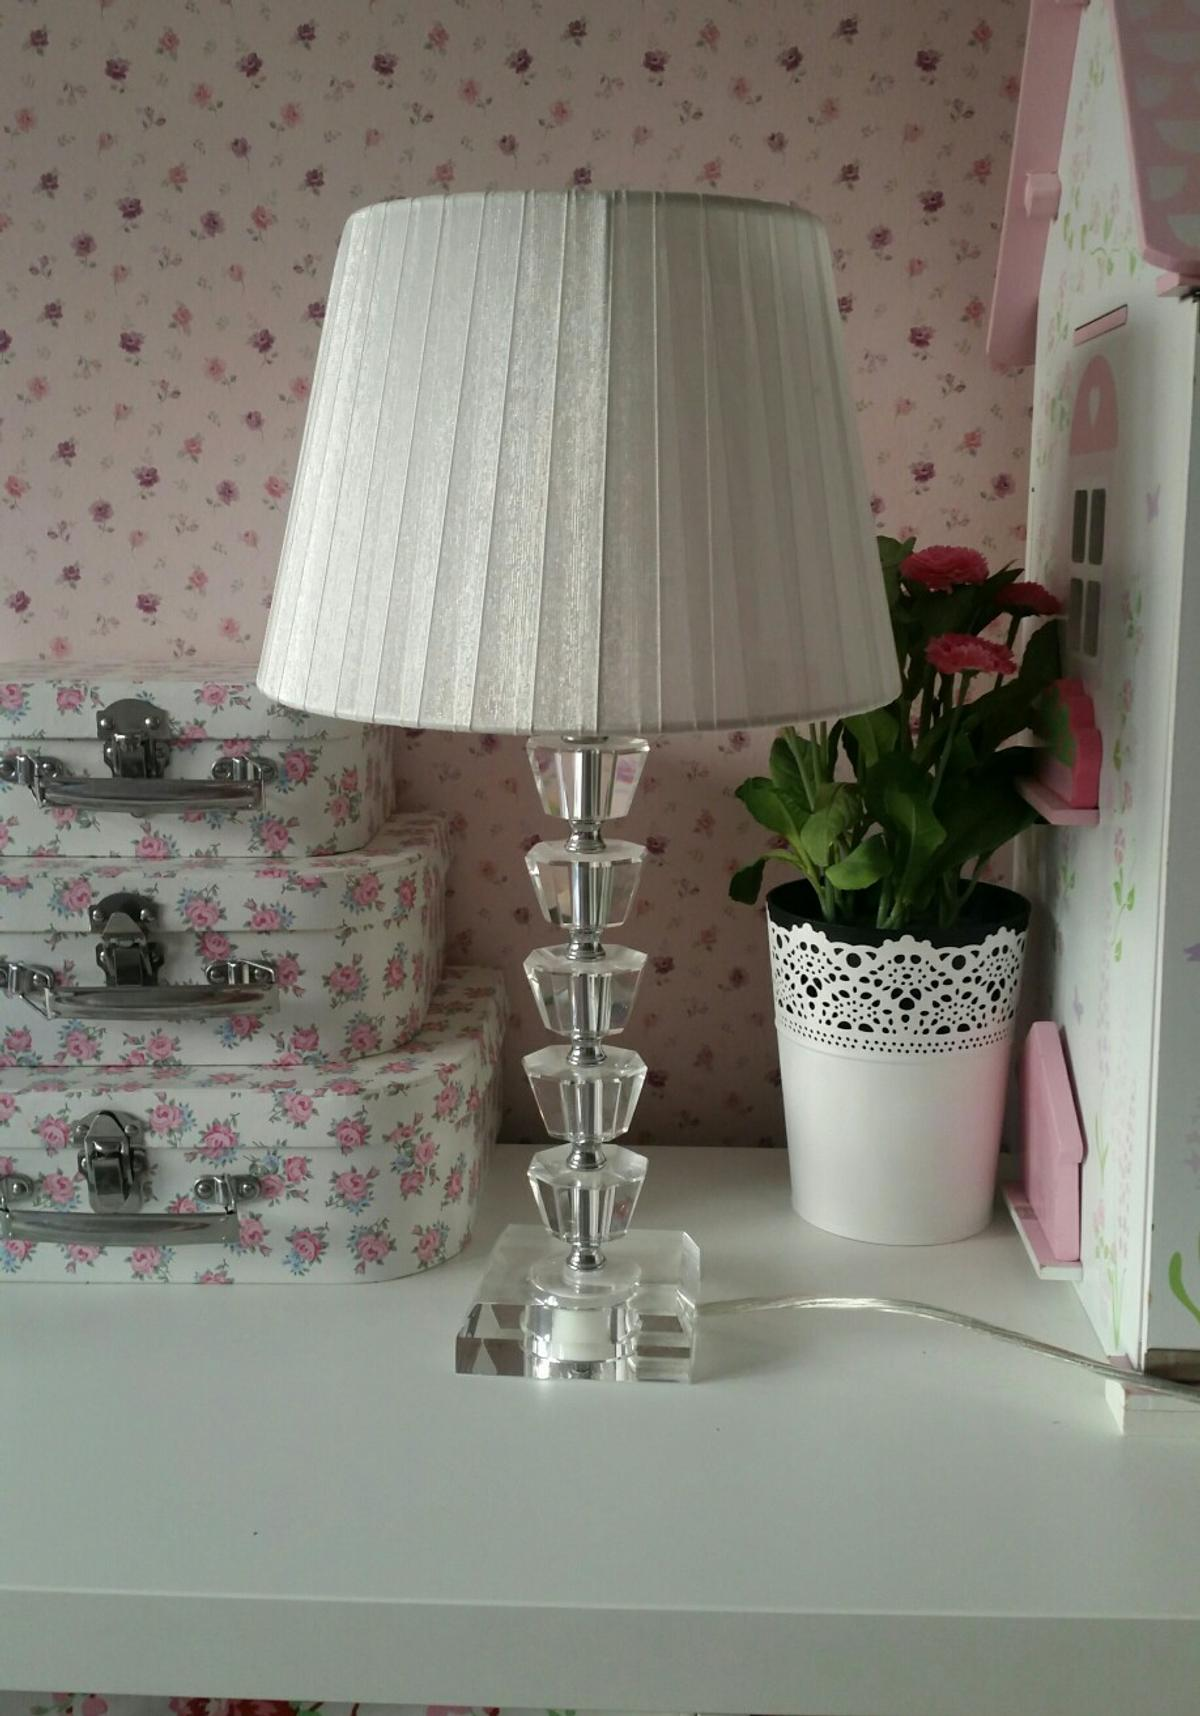 Set Of 2 Bhs Glass Table Lamps In Dartford For 20 00 For Sale Shpock